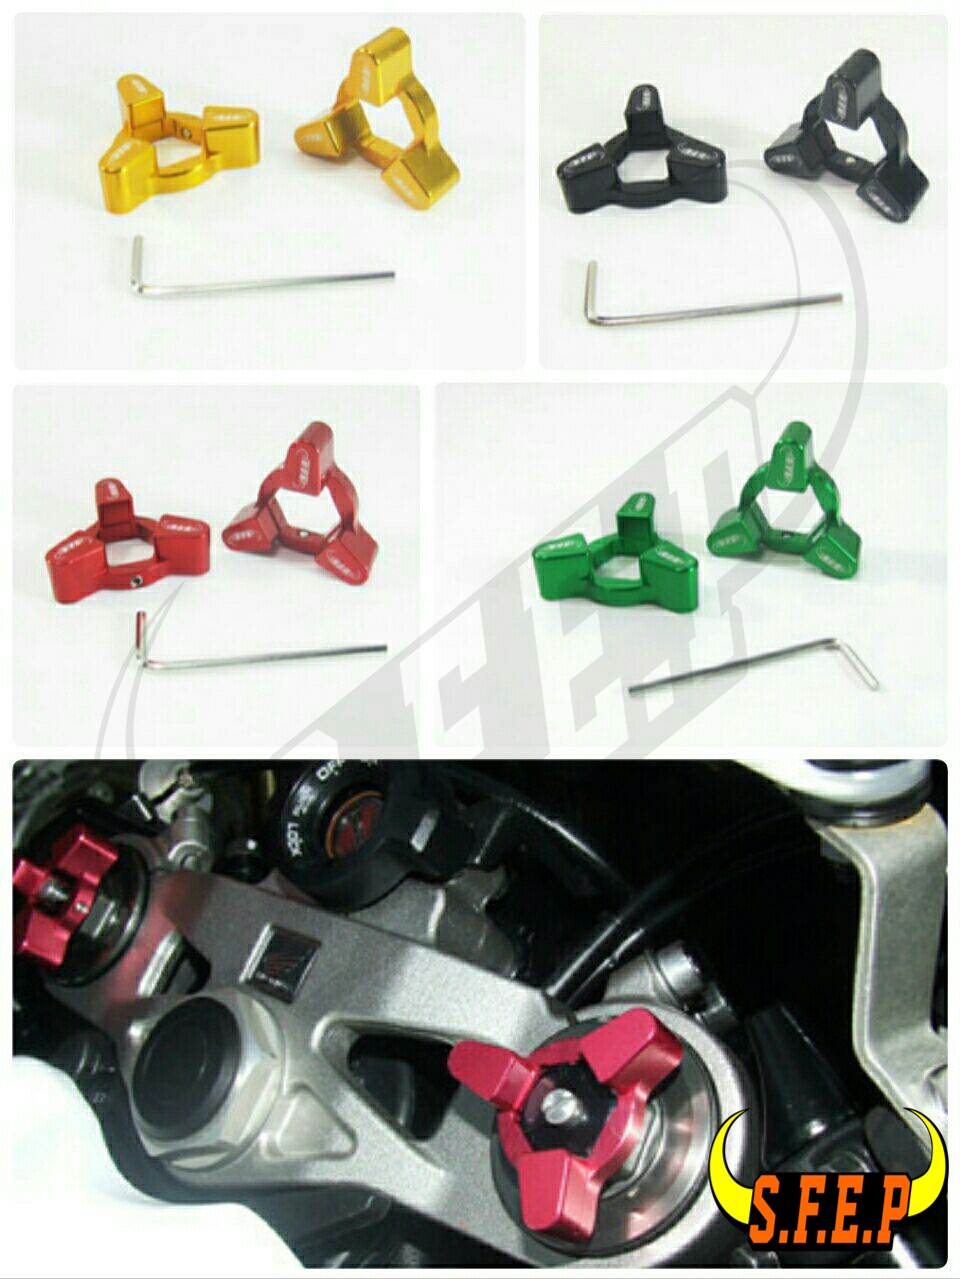 Motorcycle CNC Fork Preload Adjusters For Ducati Streetfighter S 2010/ 1198 S /M1100 S Monster 09-10/ 1098 S/ Tricolor/ R 07-08